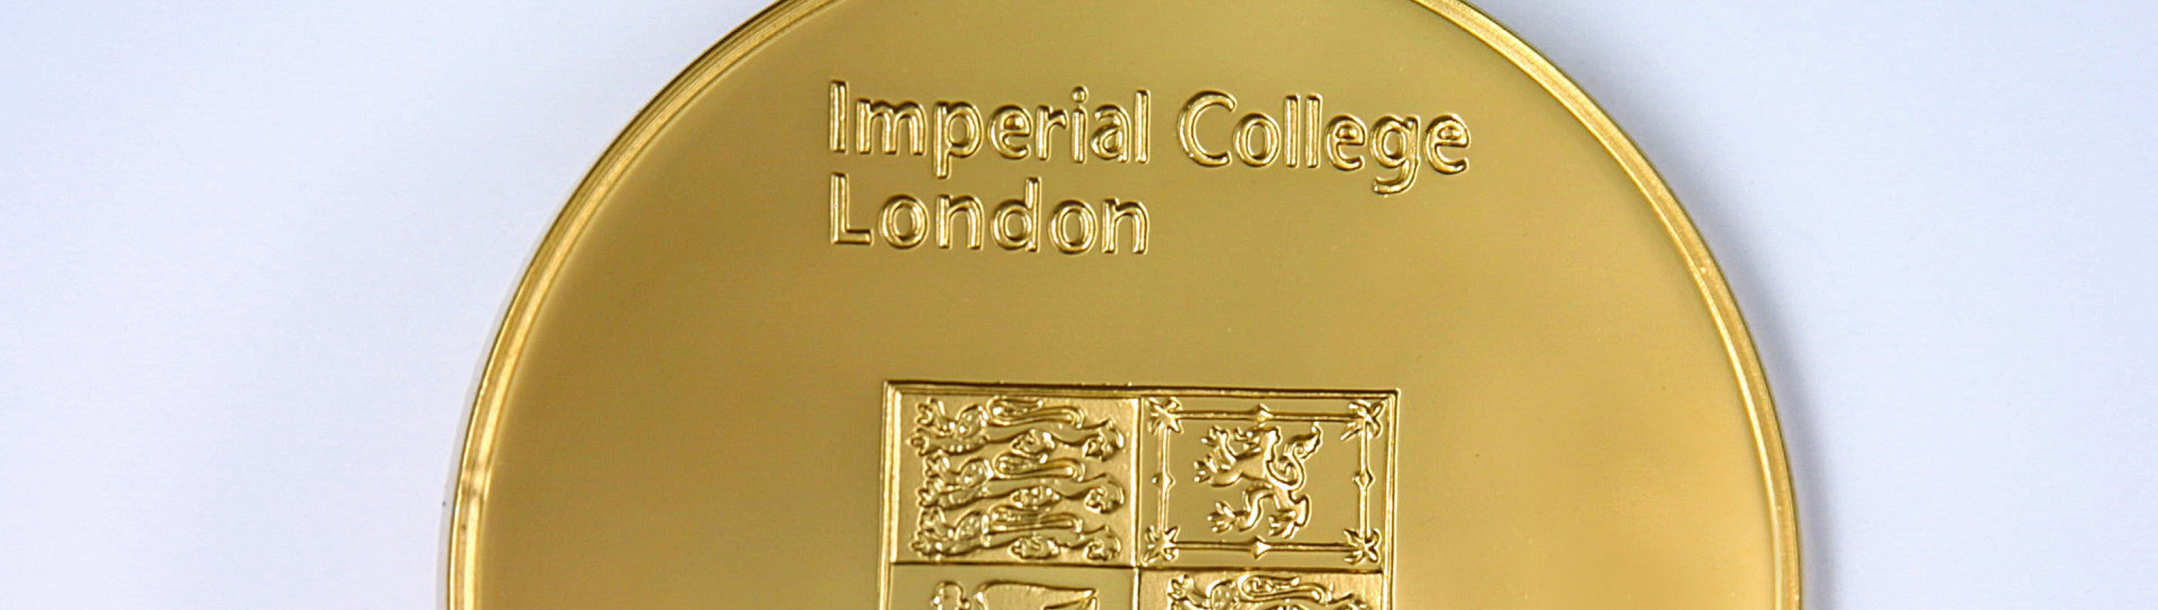 guide 7 references imperial college london guide 7 references